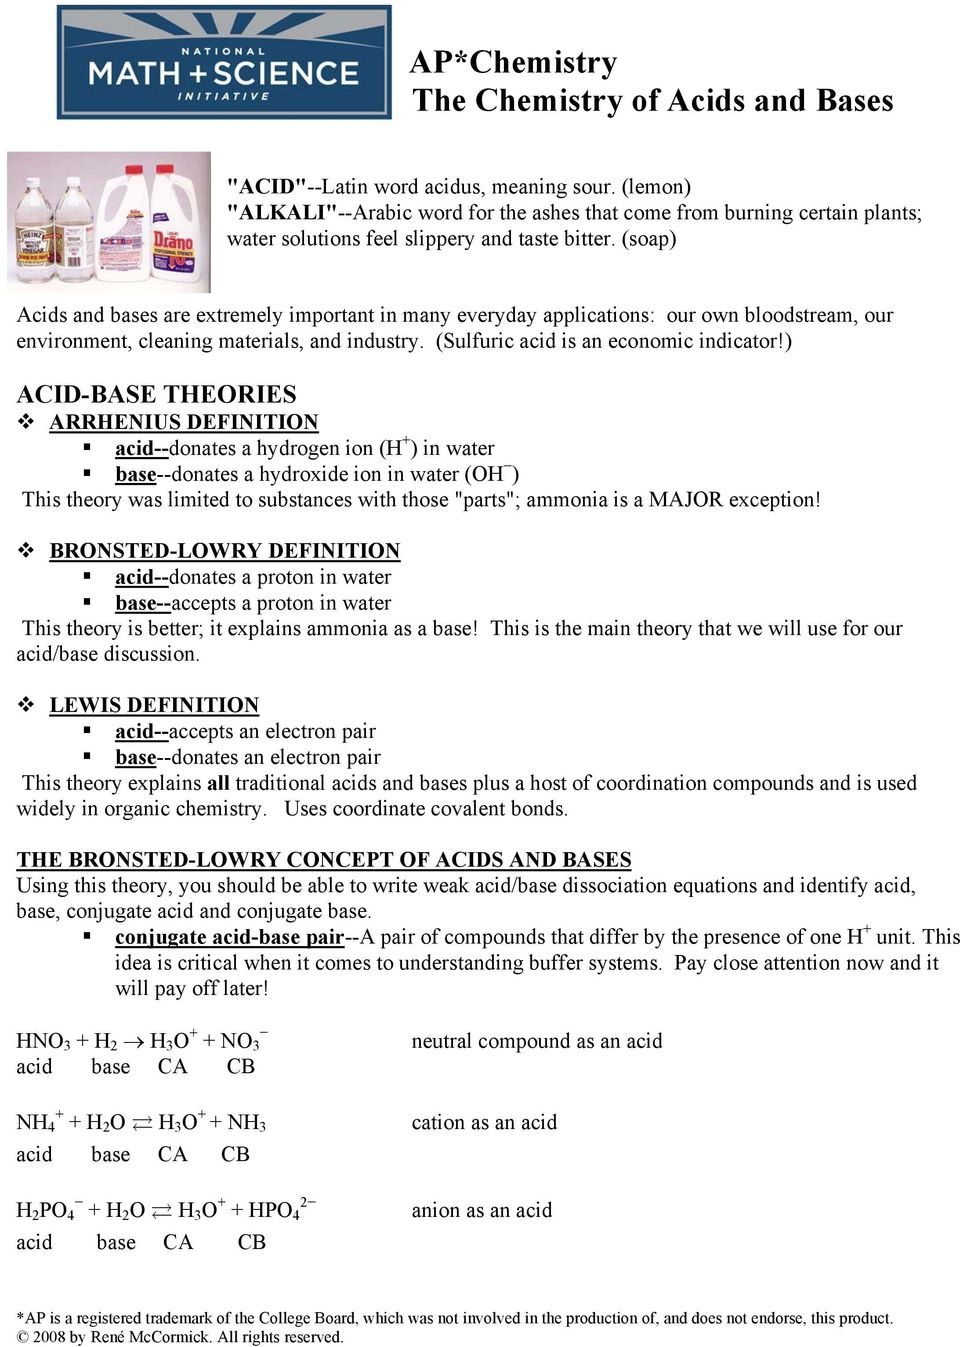 Worksheet Bronsted Lowry Acids And Bases Worksheet Answers Carlos